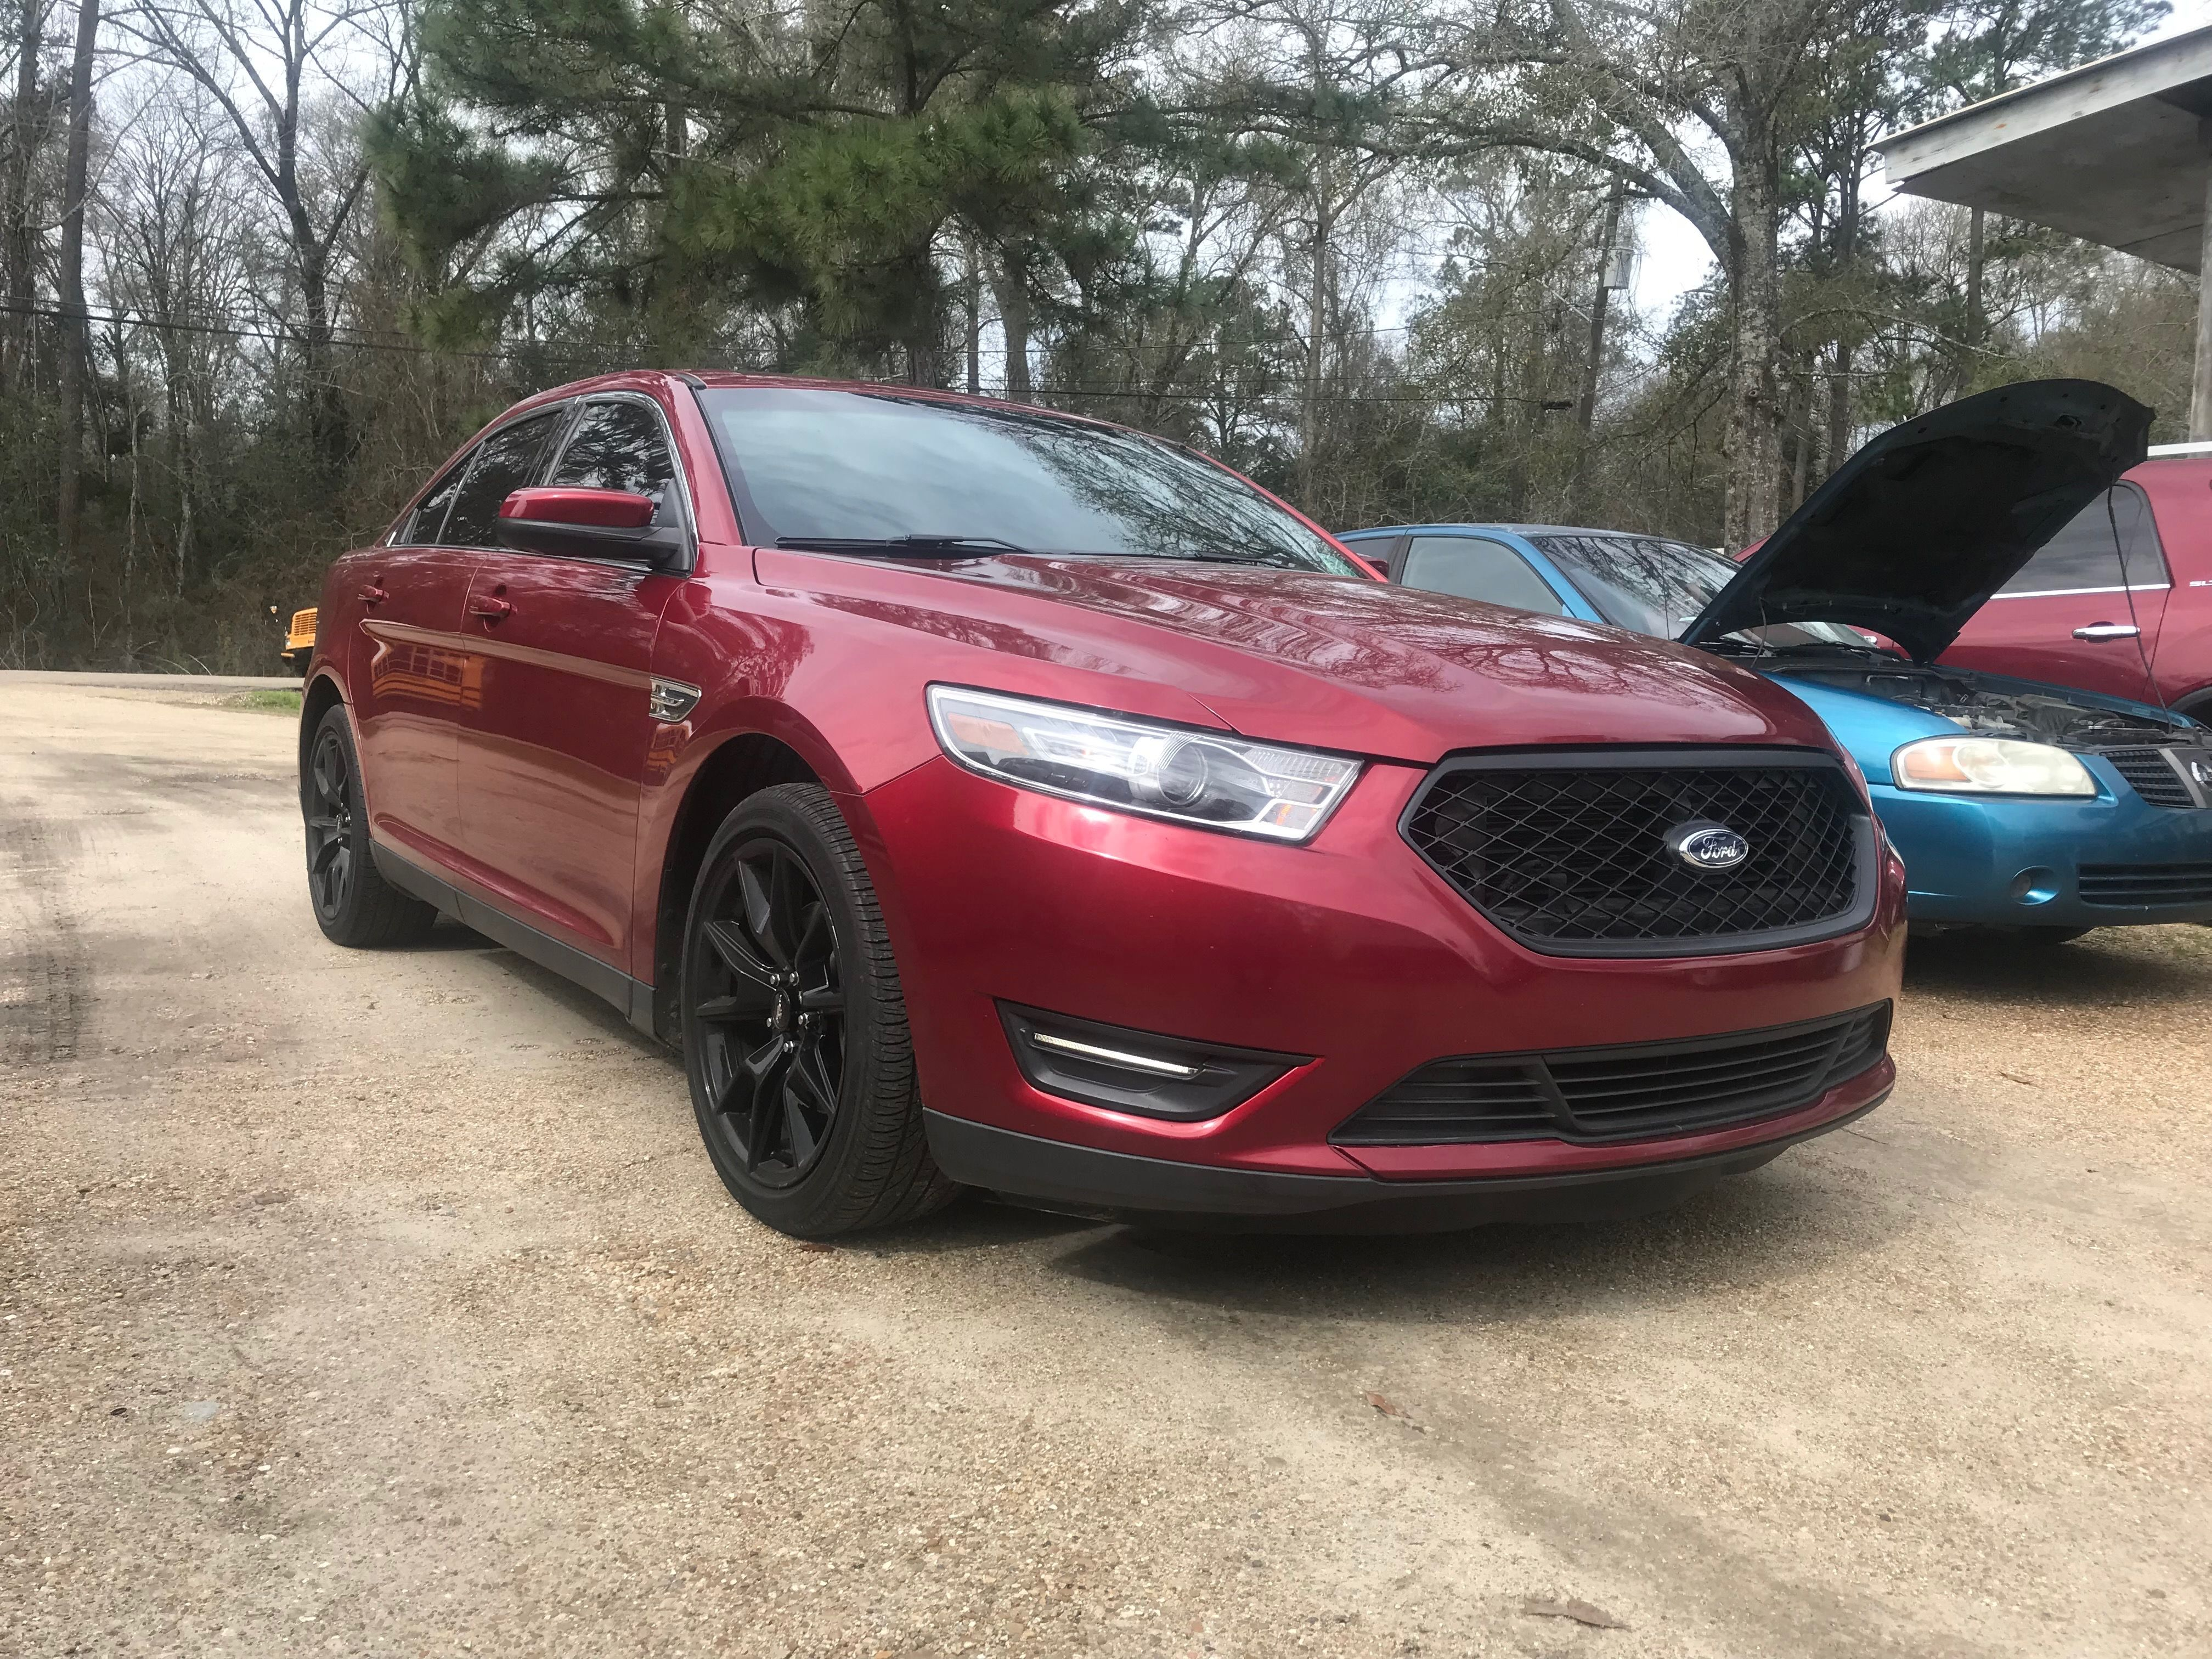 2015 Taurus With Mustang Wheels And Police Interceptor Grill Mustang Wheels Taurus Cool Cars